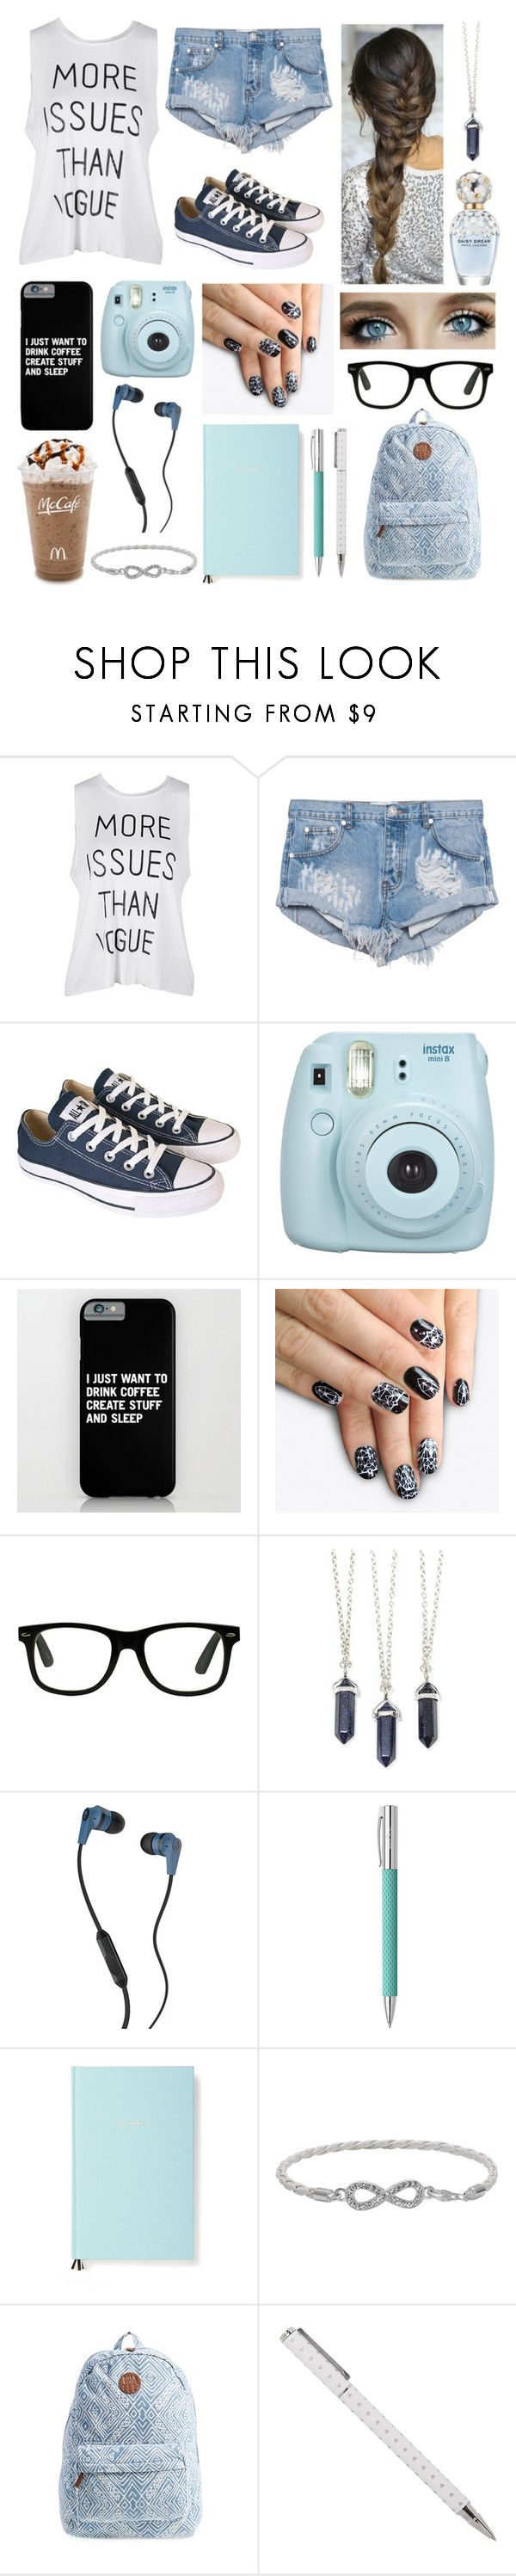 """Complete"" by heaven-cedeno ❤ liked on Polyvore featuring OneTeaspoon, Converse, Fujifilm, alfa.K, Marc Jacobs, Skullcandy, Faber-Castell, Kate Spade, Malin + Mila and Billabong"